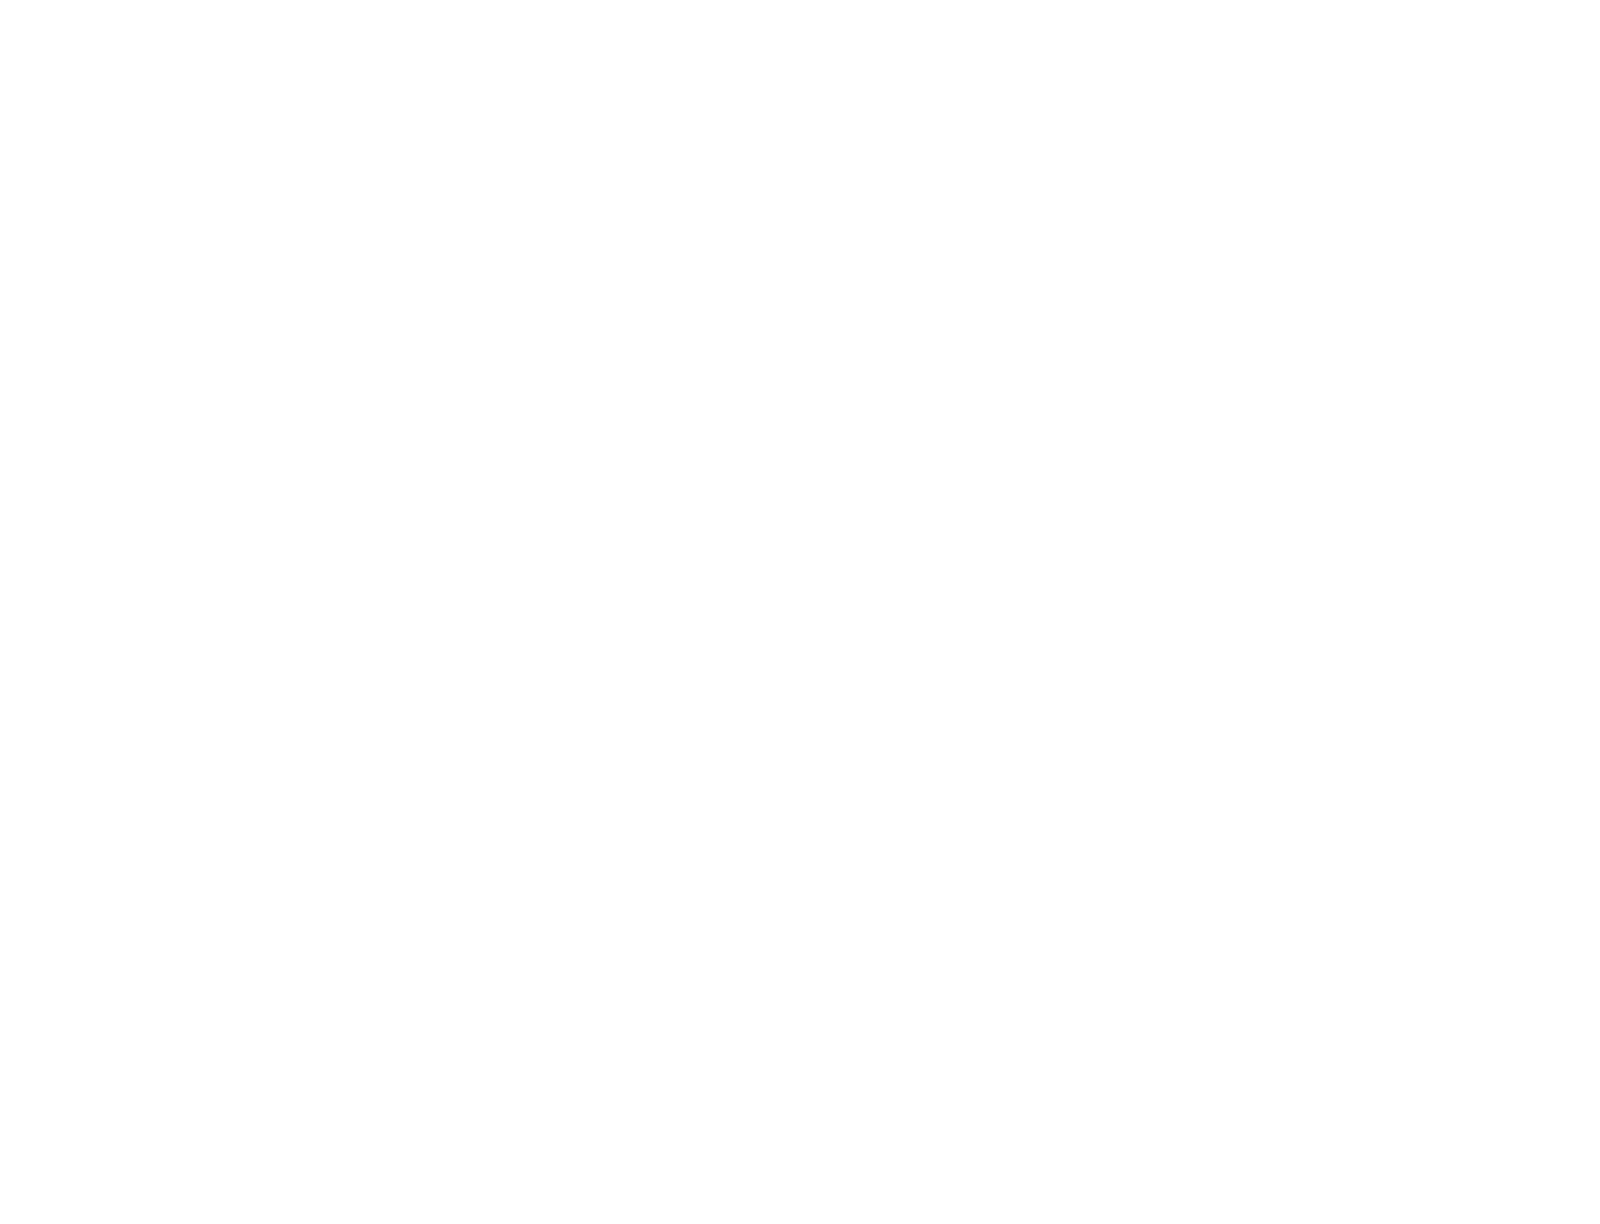 series-actors-logo